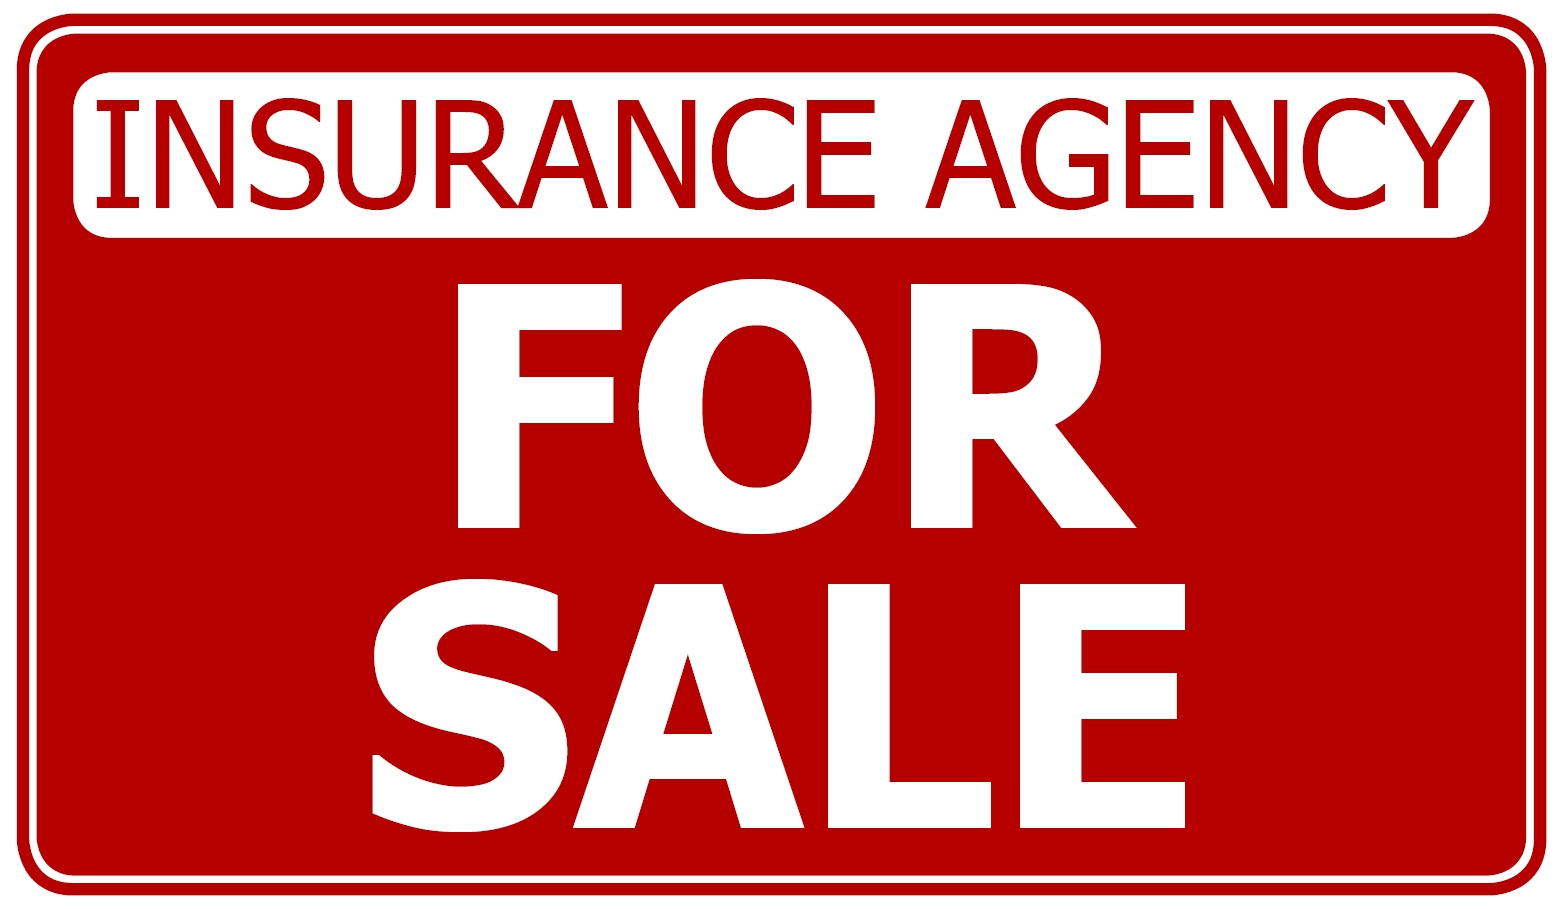 Insurance agencies for sale